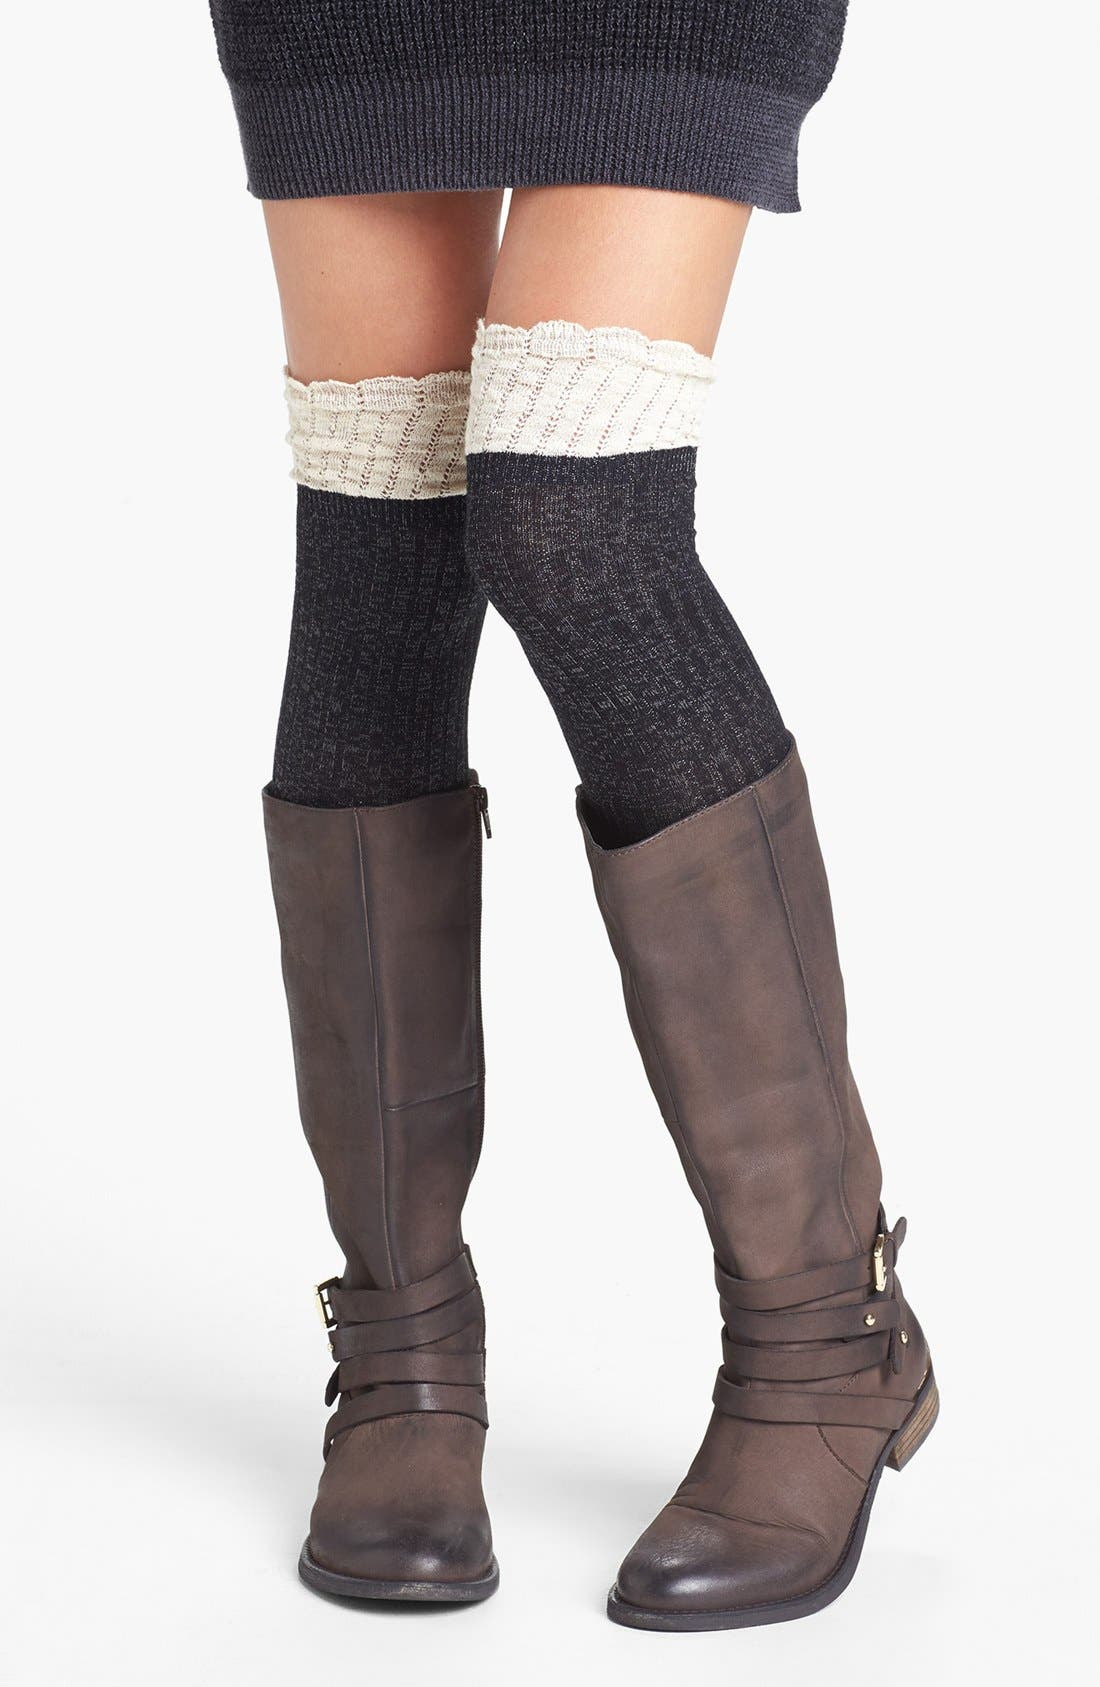 BP., Colorblock Over the Knee Socks, Main thumbnail 1, color, 020